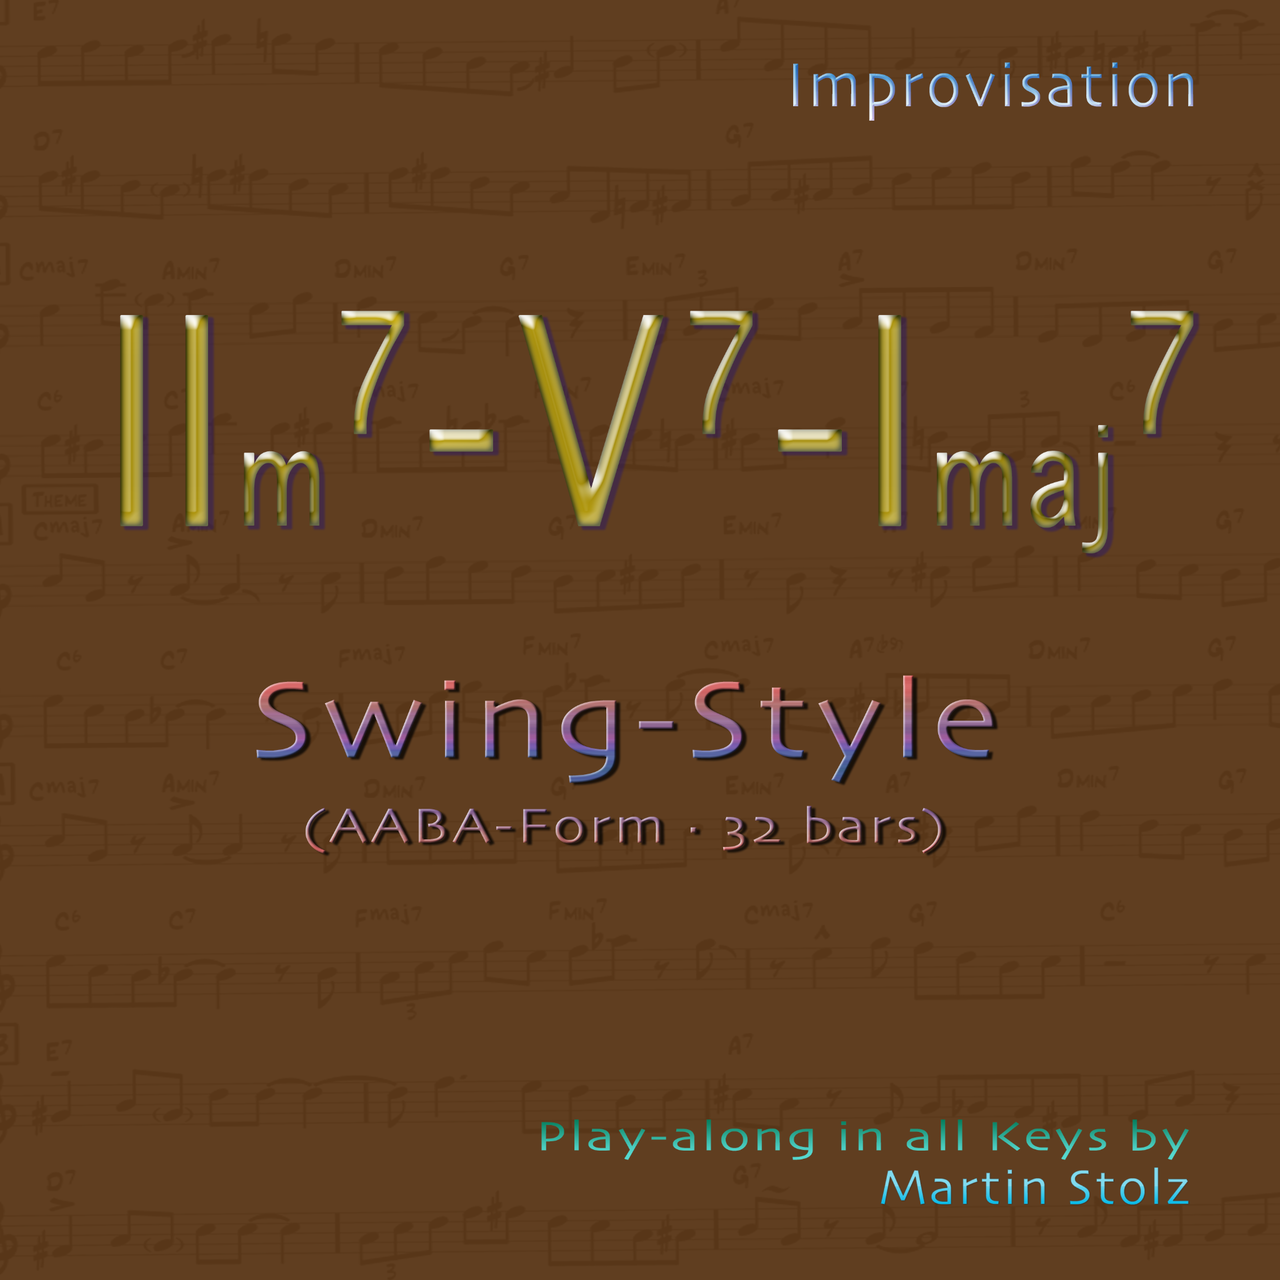 IIm7-V7-Imaj7 in swing style (AABA - 32bars) in all keys